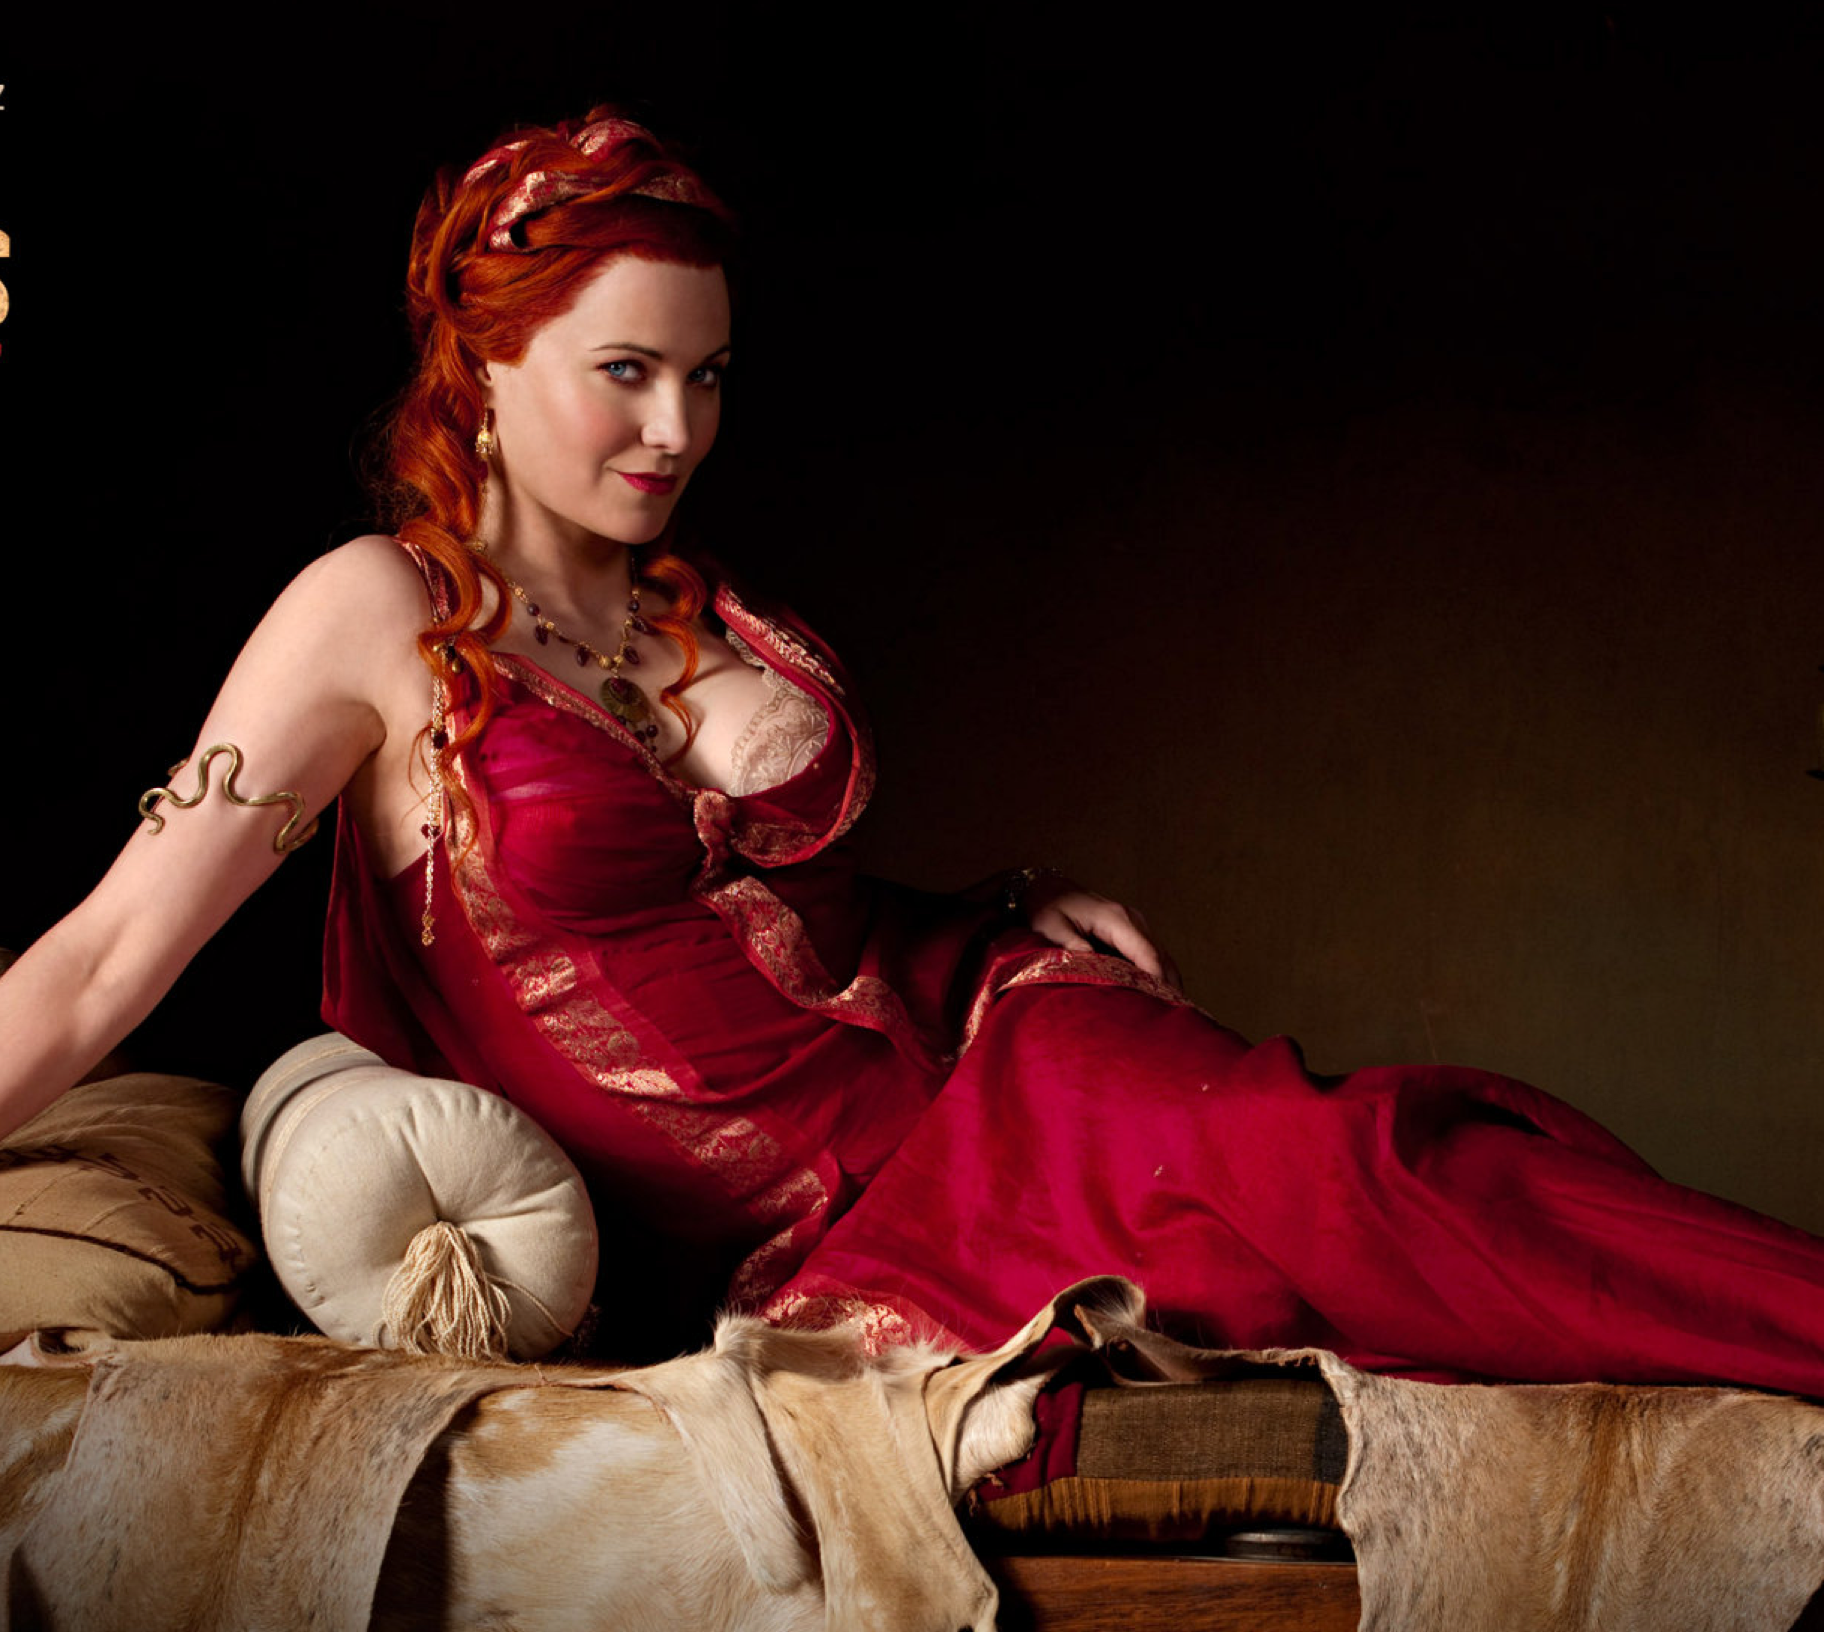 Lucy Lawless portrays a brutally cunning Lucretia, the wife of Batiatus, the owner of the Ludus